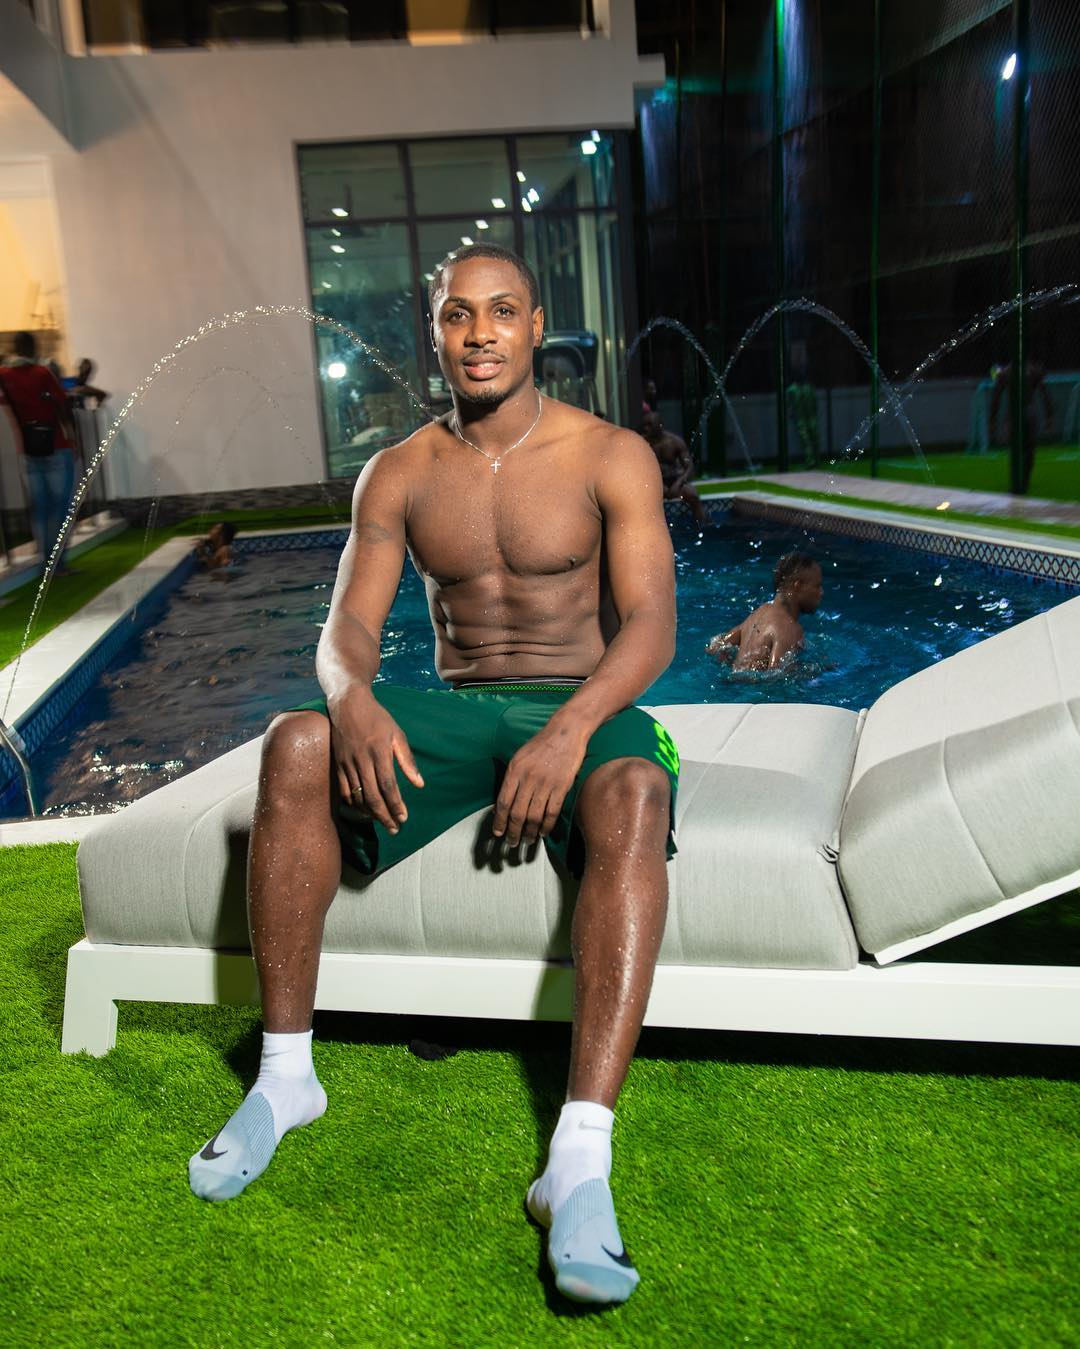 Hot! Hot! Jude Ighalo Shows Off His Buff Body In Sexy Shirtless Pics